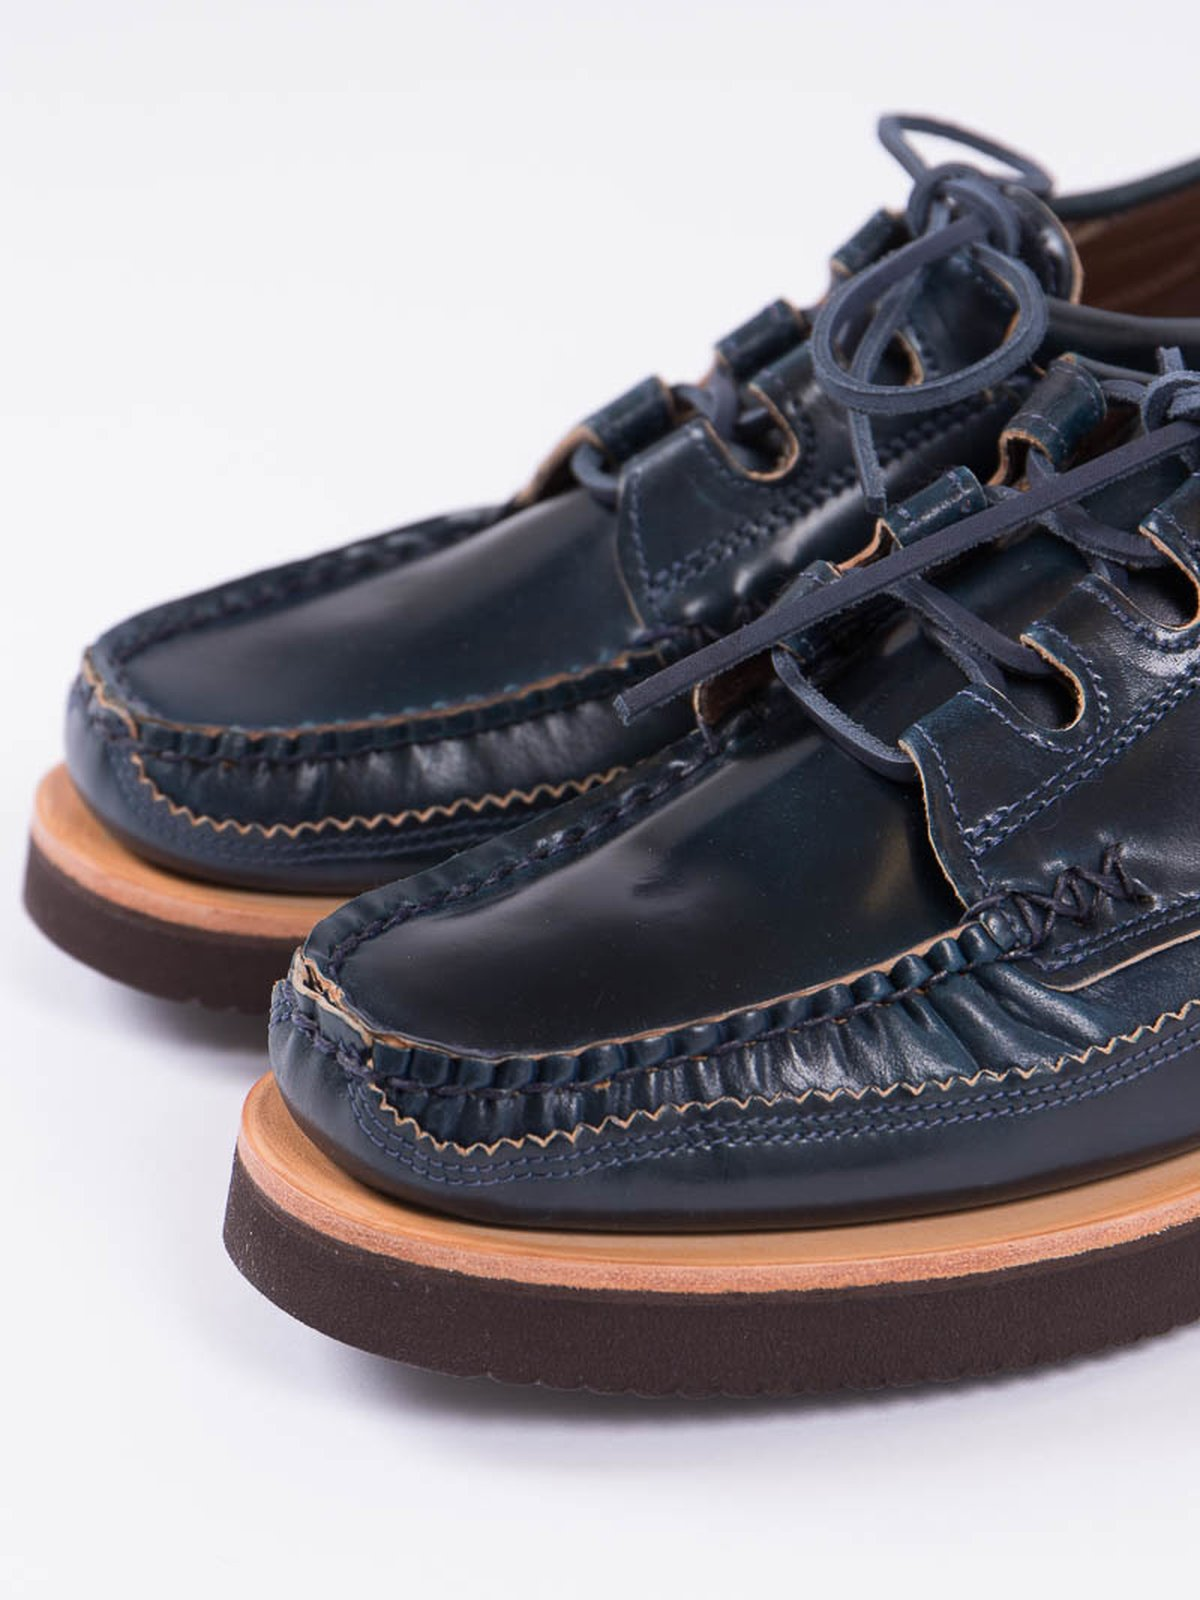 Navy Cordovan Ghillie Moc DB Shoe Exclusive - Image 2